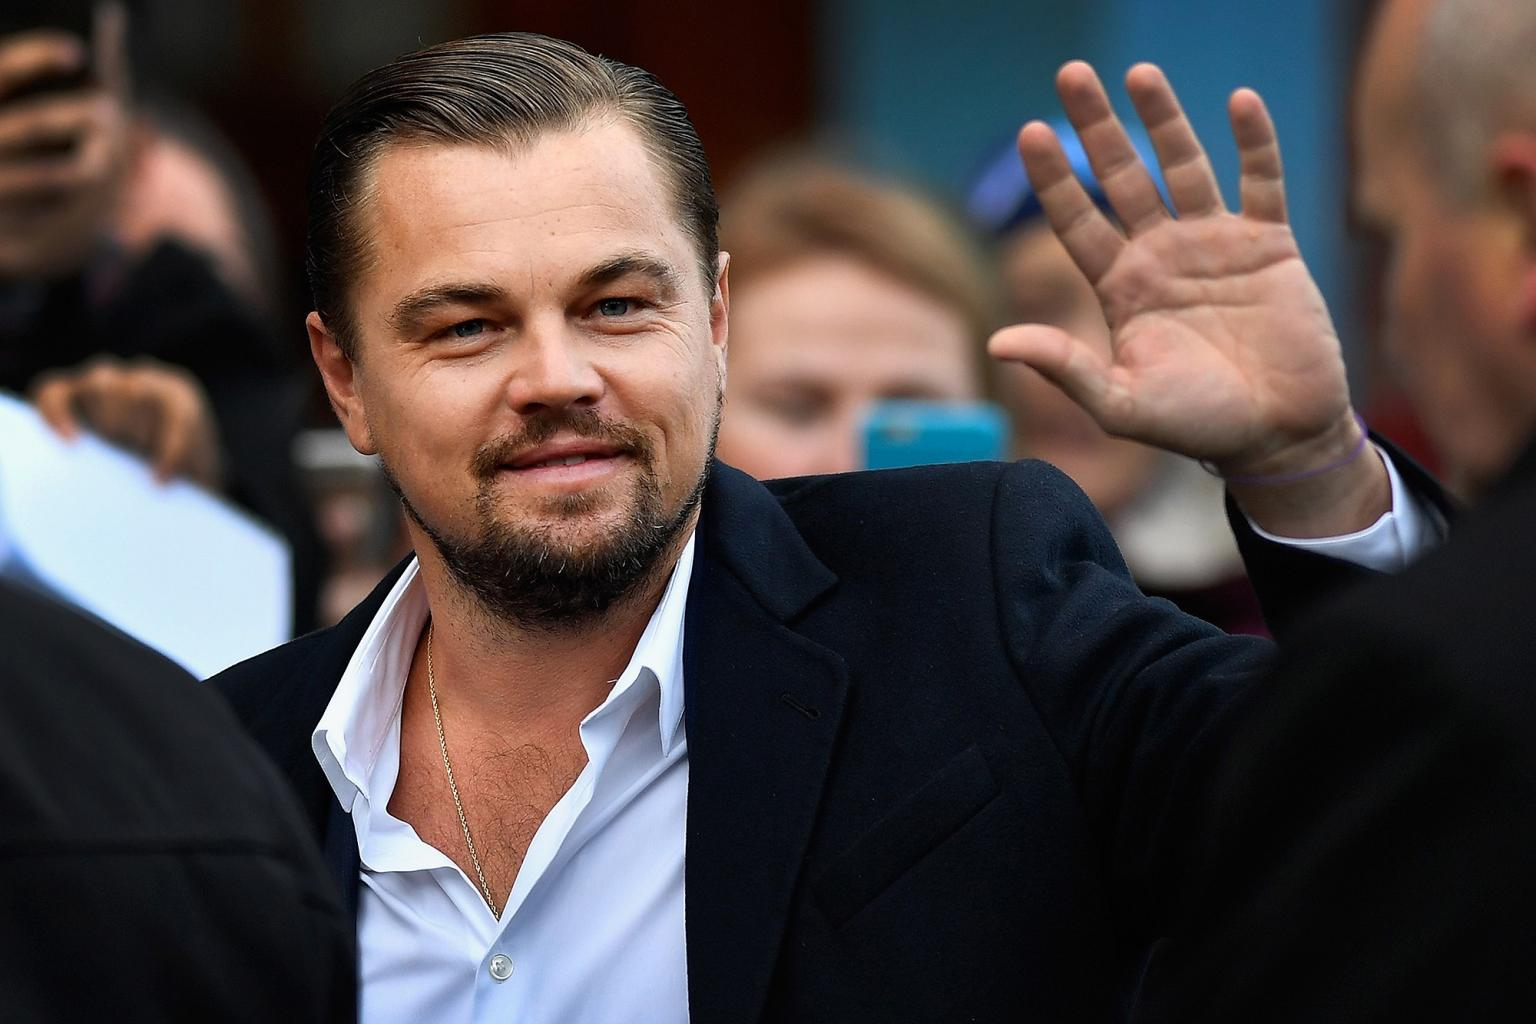 Leonardo DiCaprio Lunches at Edinburgh Caf  '  to Support Charity During Visit to Scotland